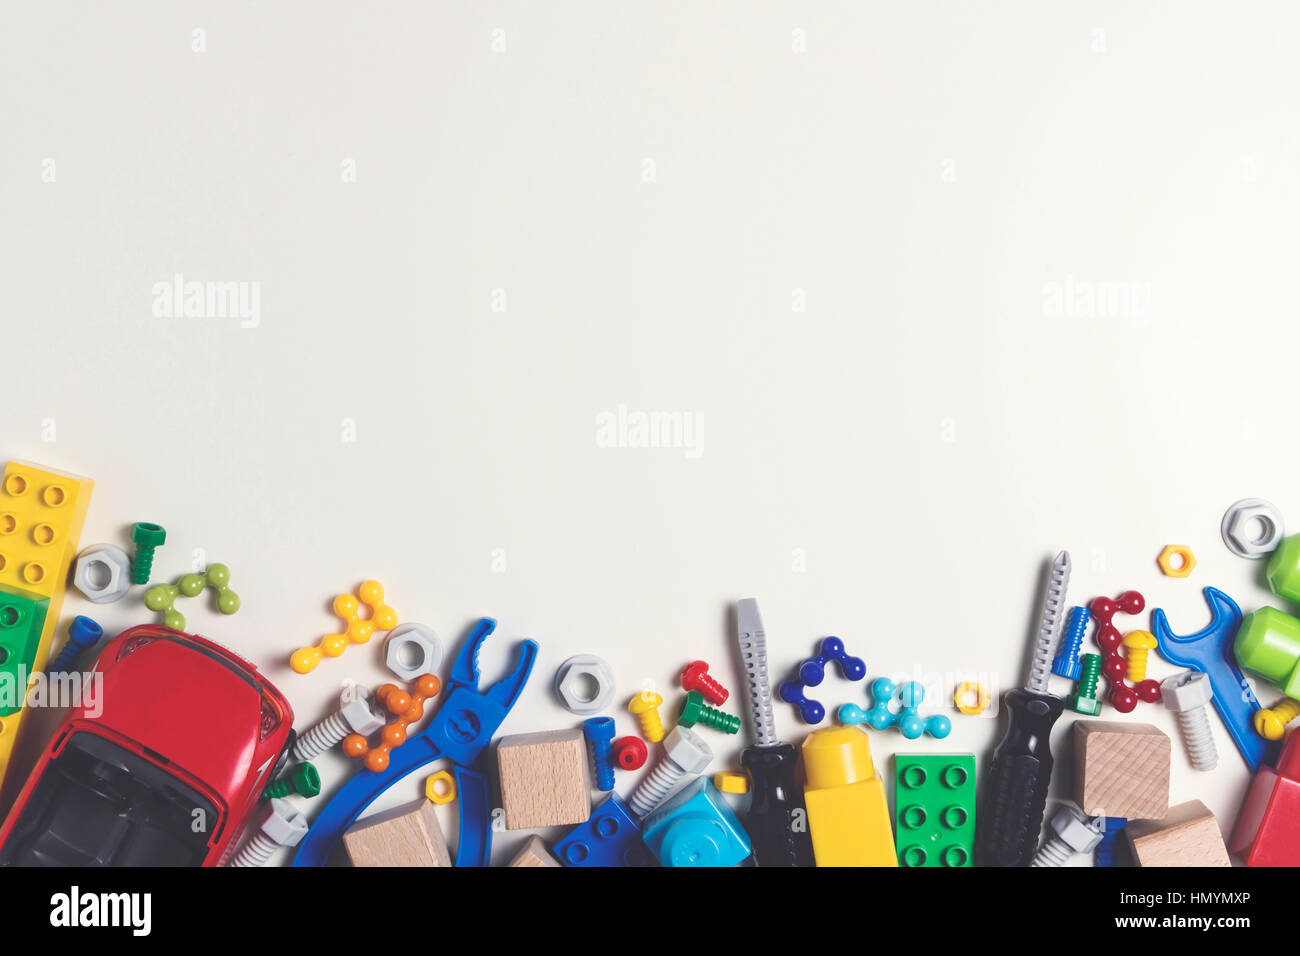 Boy Toys Background : Colorful kids toys frame plastic toy tools bolts nuts